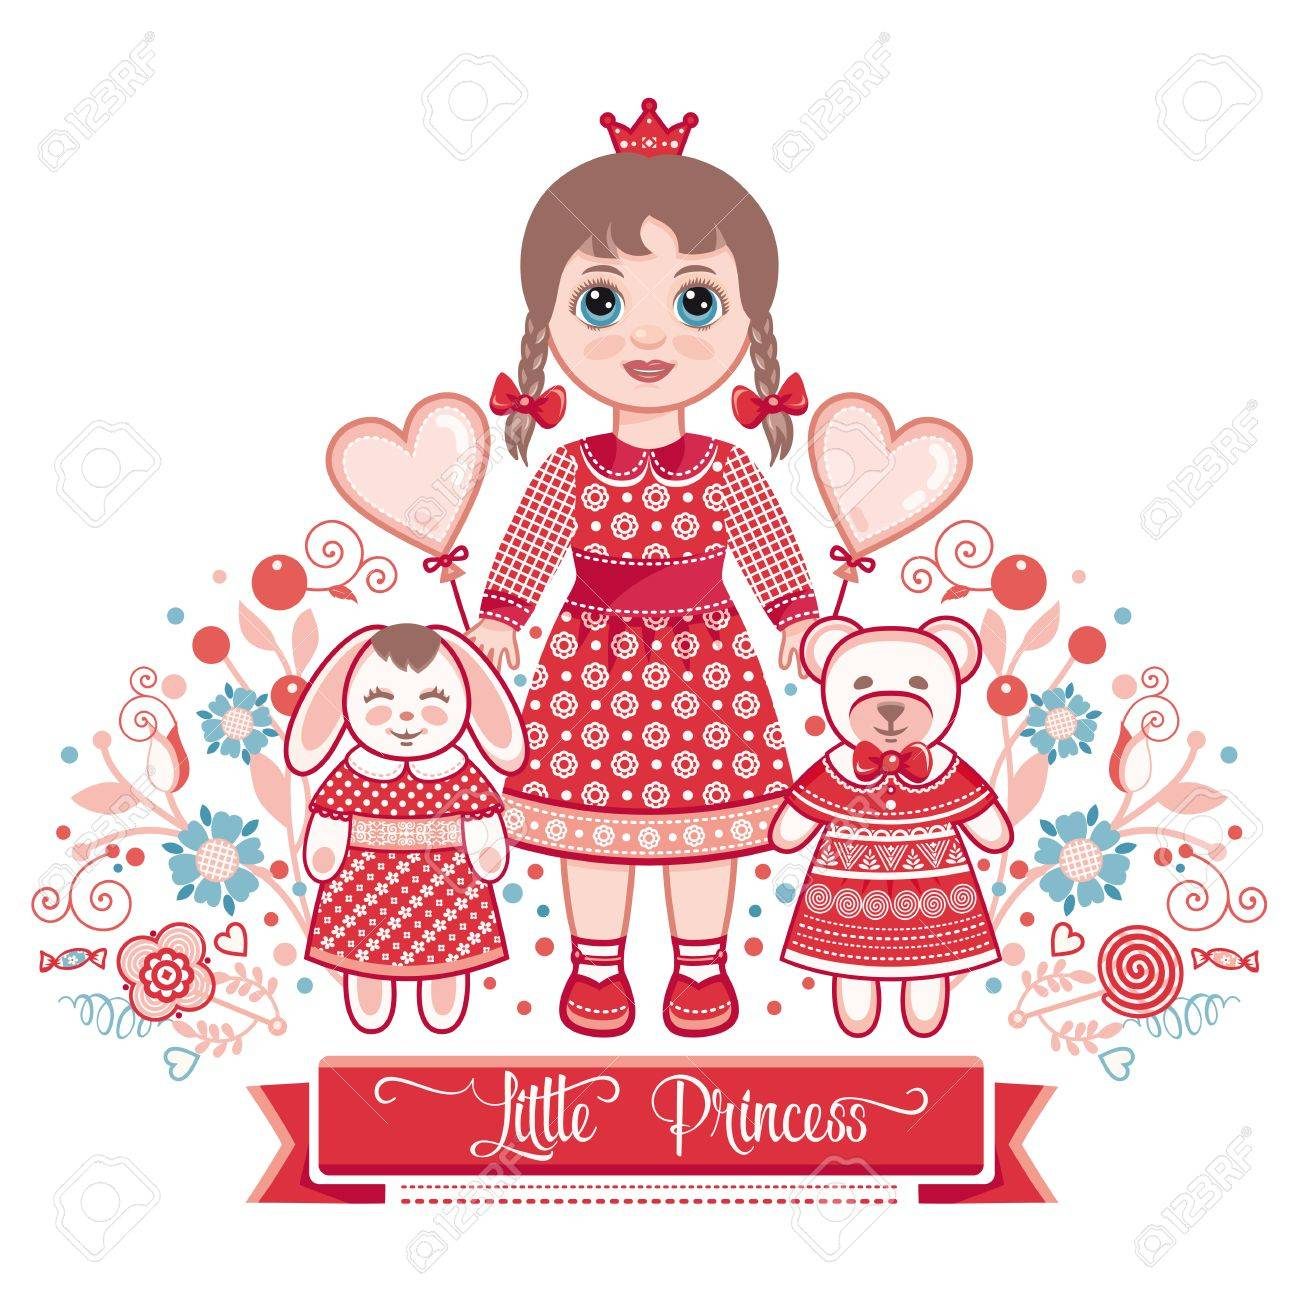 Happy birthday greetings card for girl illustration of cute happy birthday greetings card for girl illustration of cute little princess stock vector kristyandbryce Image collections